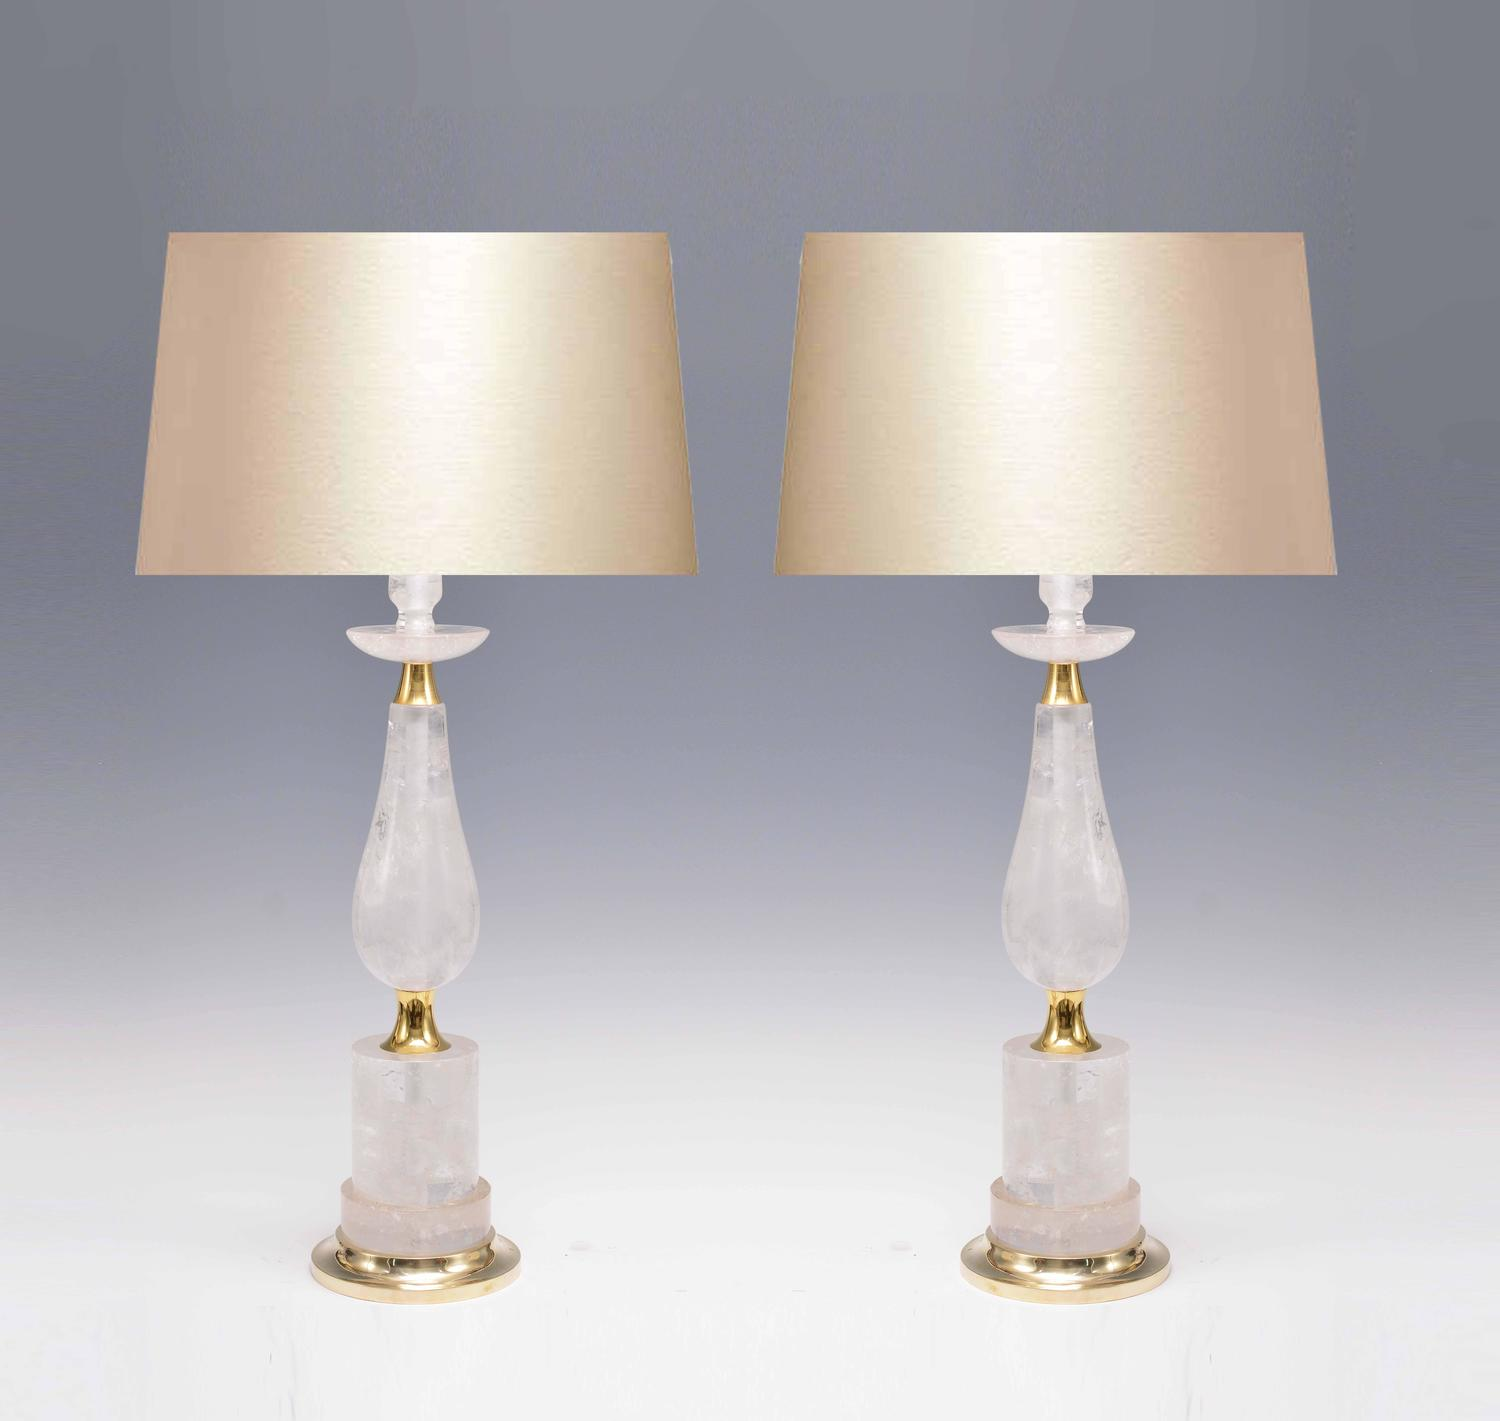 pair of elegant form rock crystal quartz lamps for sale at 1stdibs. Black Bedroom Furniture Sets. Home Design Ideas